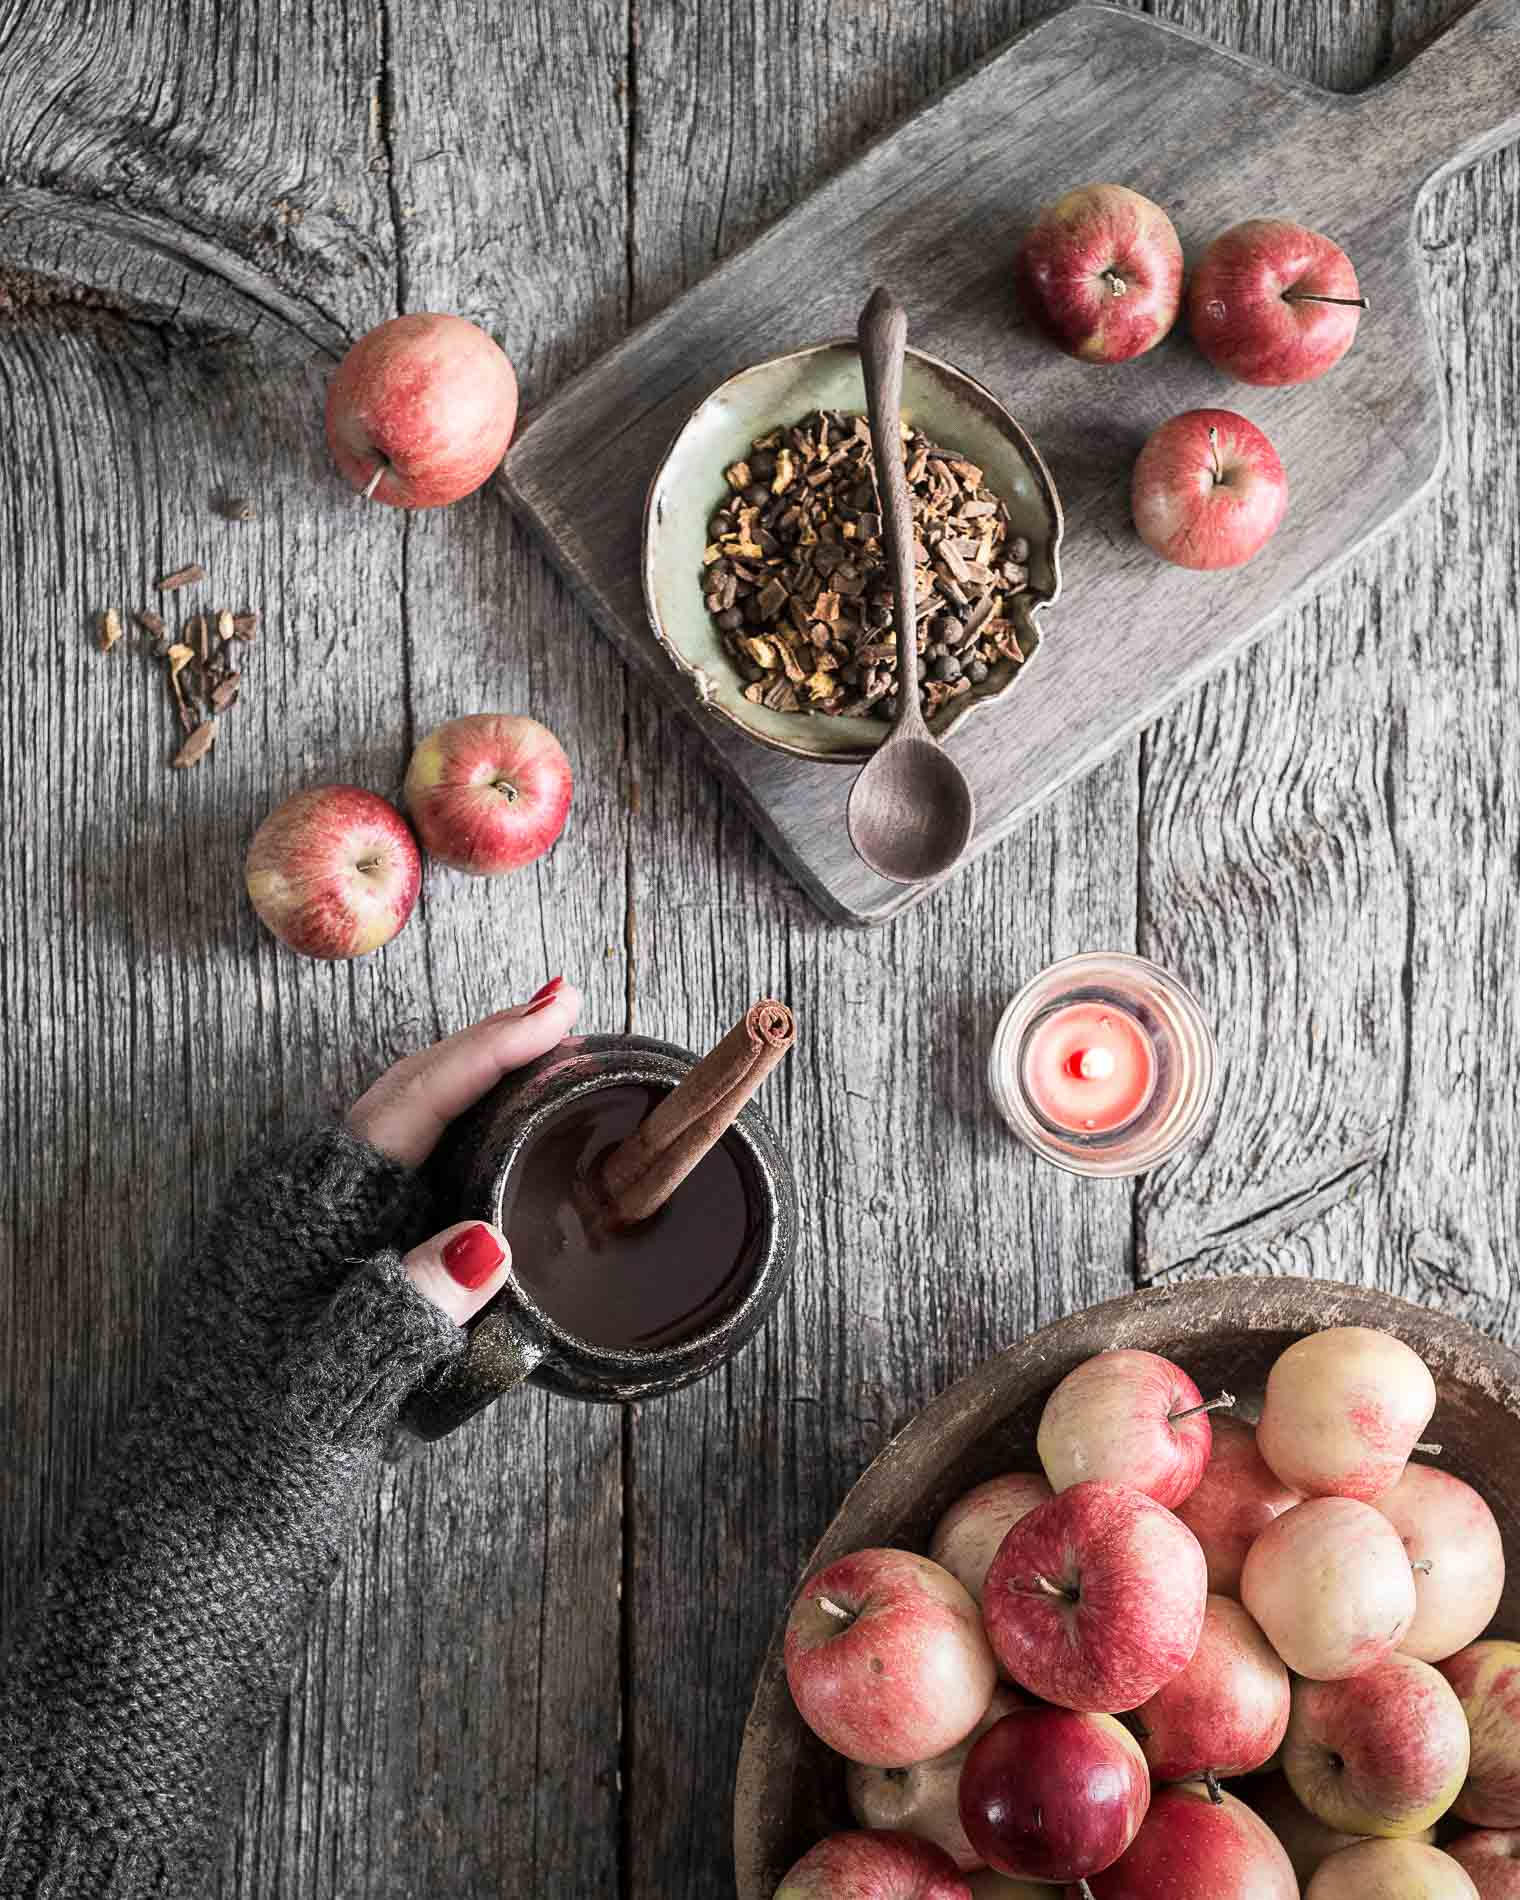 Homemade apple cider is so easy to make, I'm shocked I haven't tried it before! But I suppose the only time I'd think about making apple cider is when I have so many apples I don't know what to do with them—which is what happened this year. Keeping With the Times